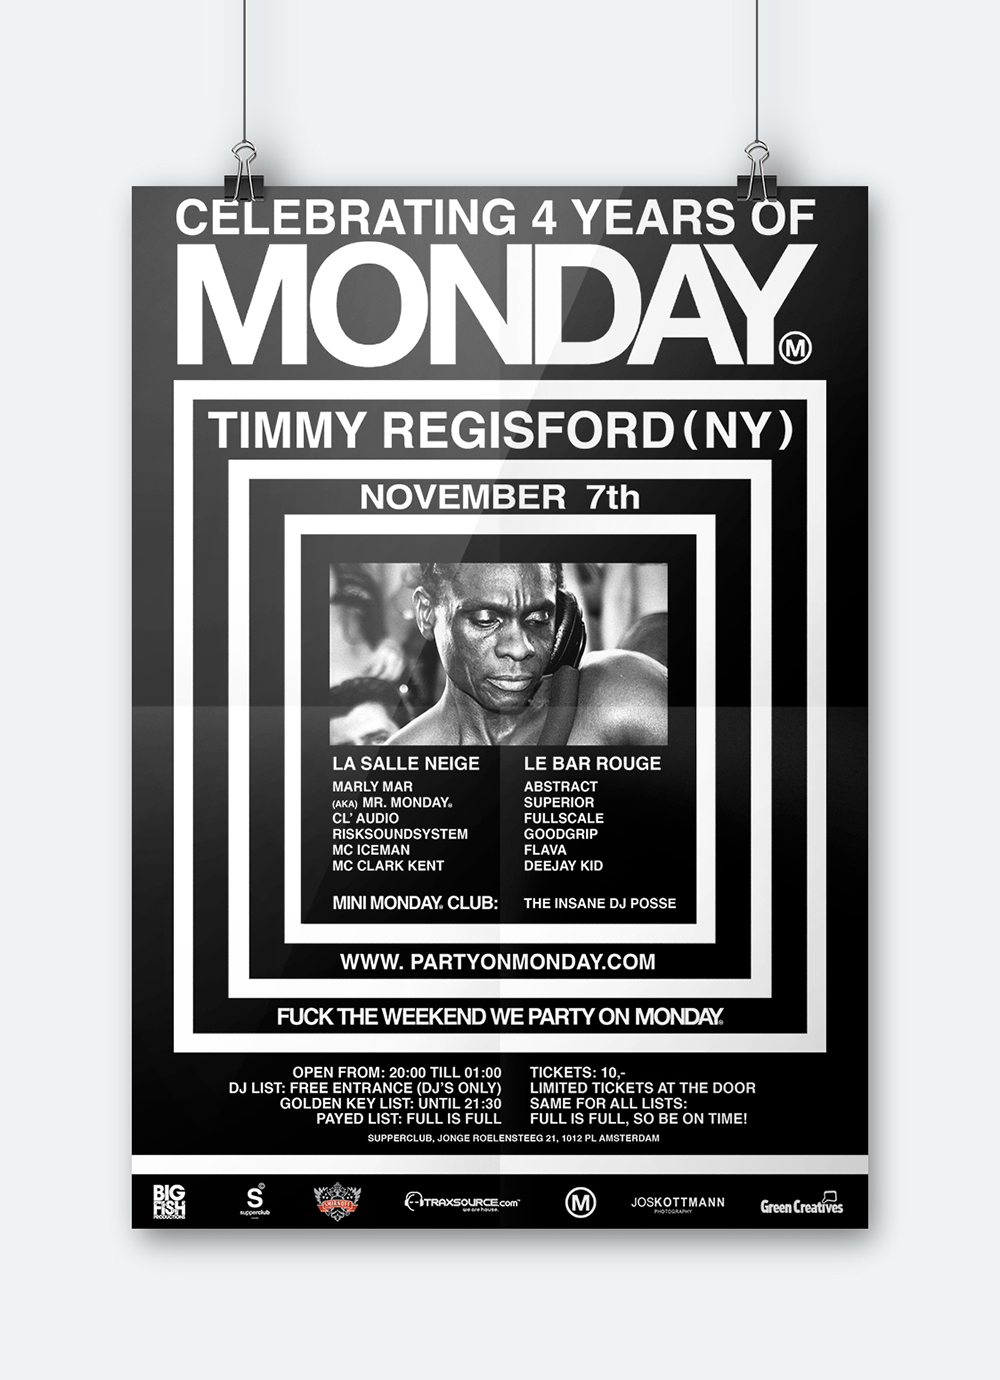 Party_On_Monday_Poster_Green_Creatives_06